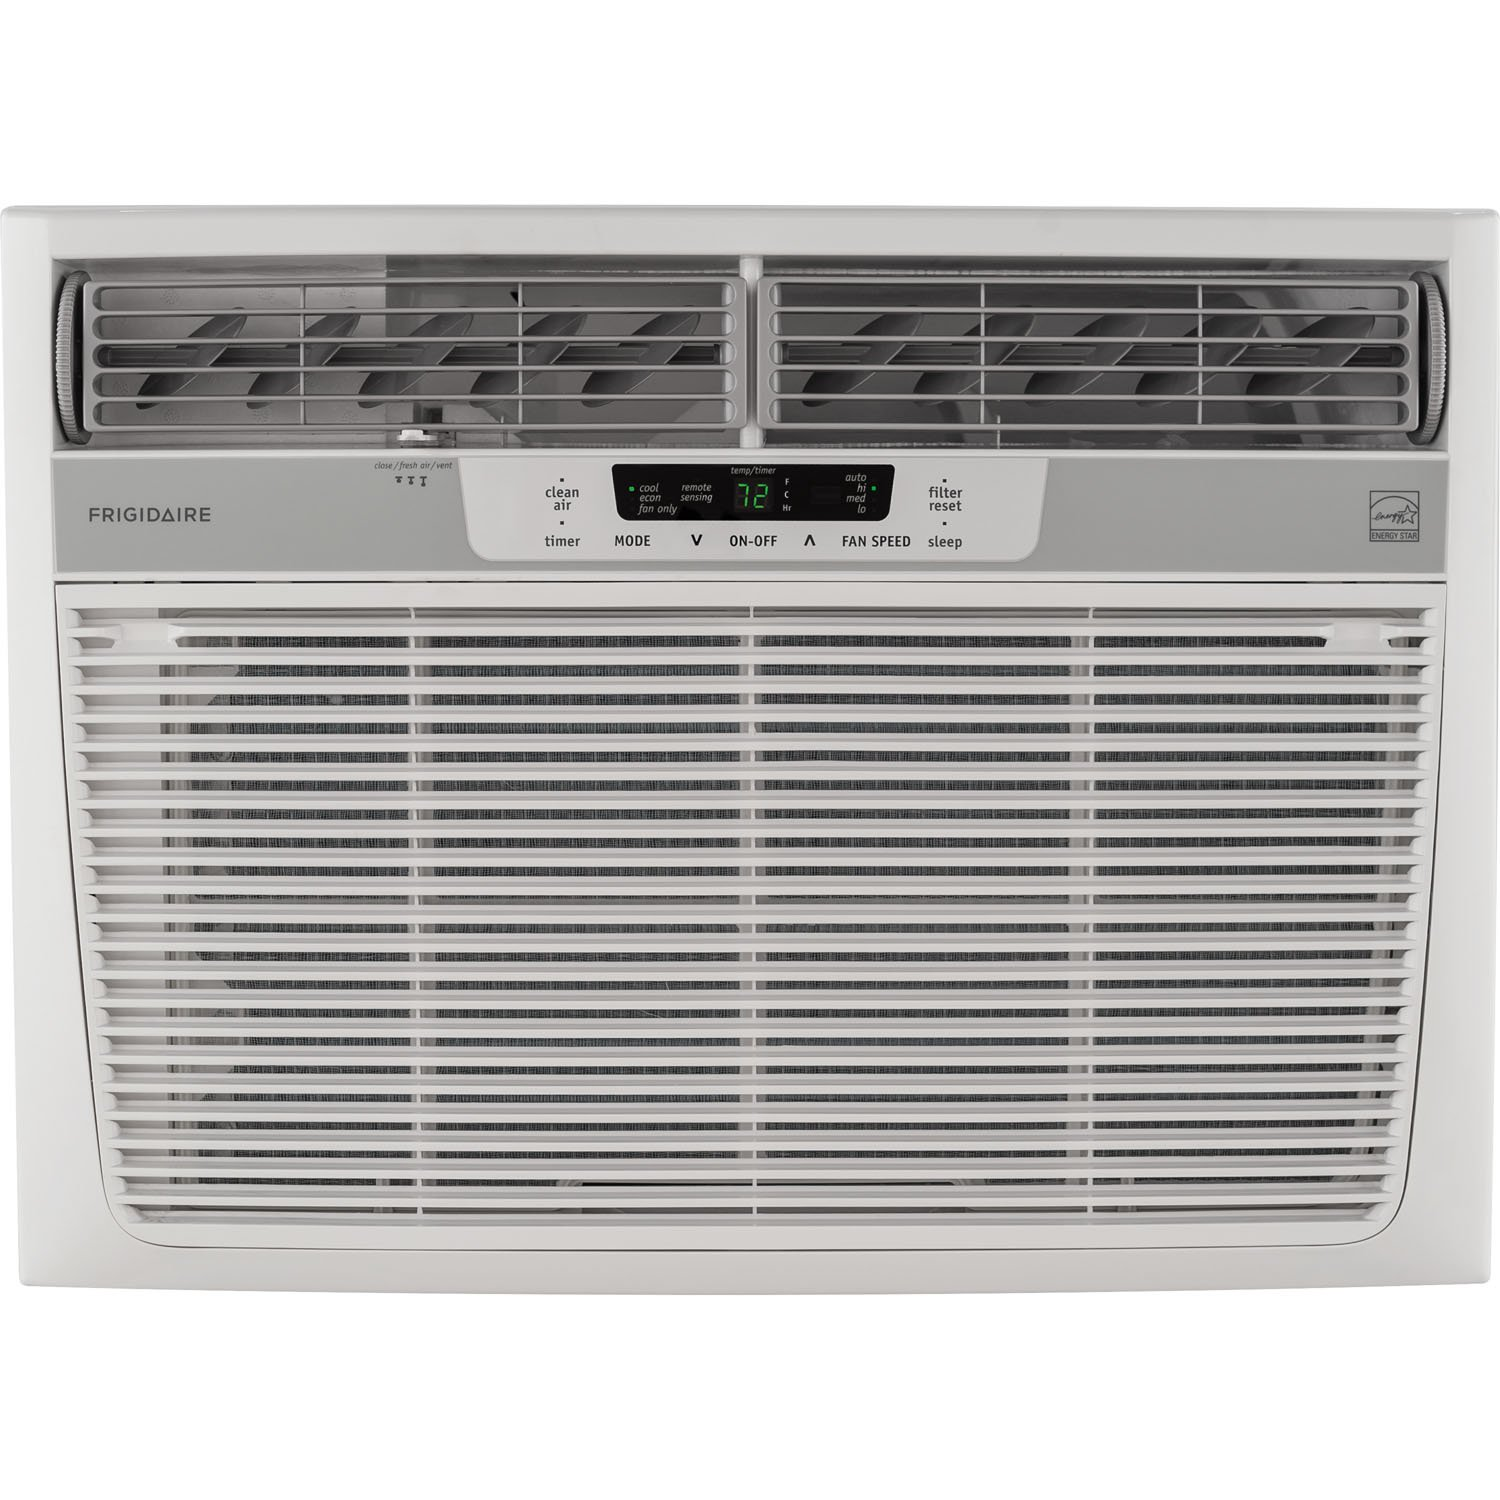 Frigidaire 15,100 BTU 115V Window-Mounted Median Air Conditioner with Temperature Sensing Remote Control